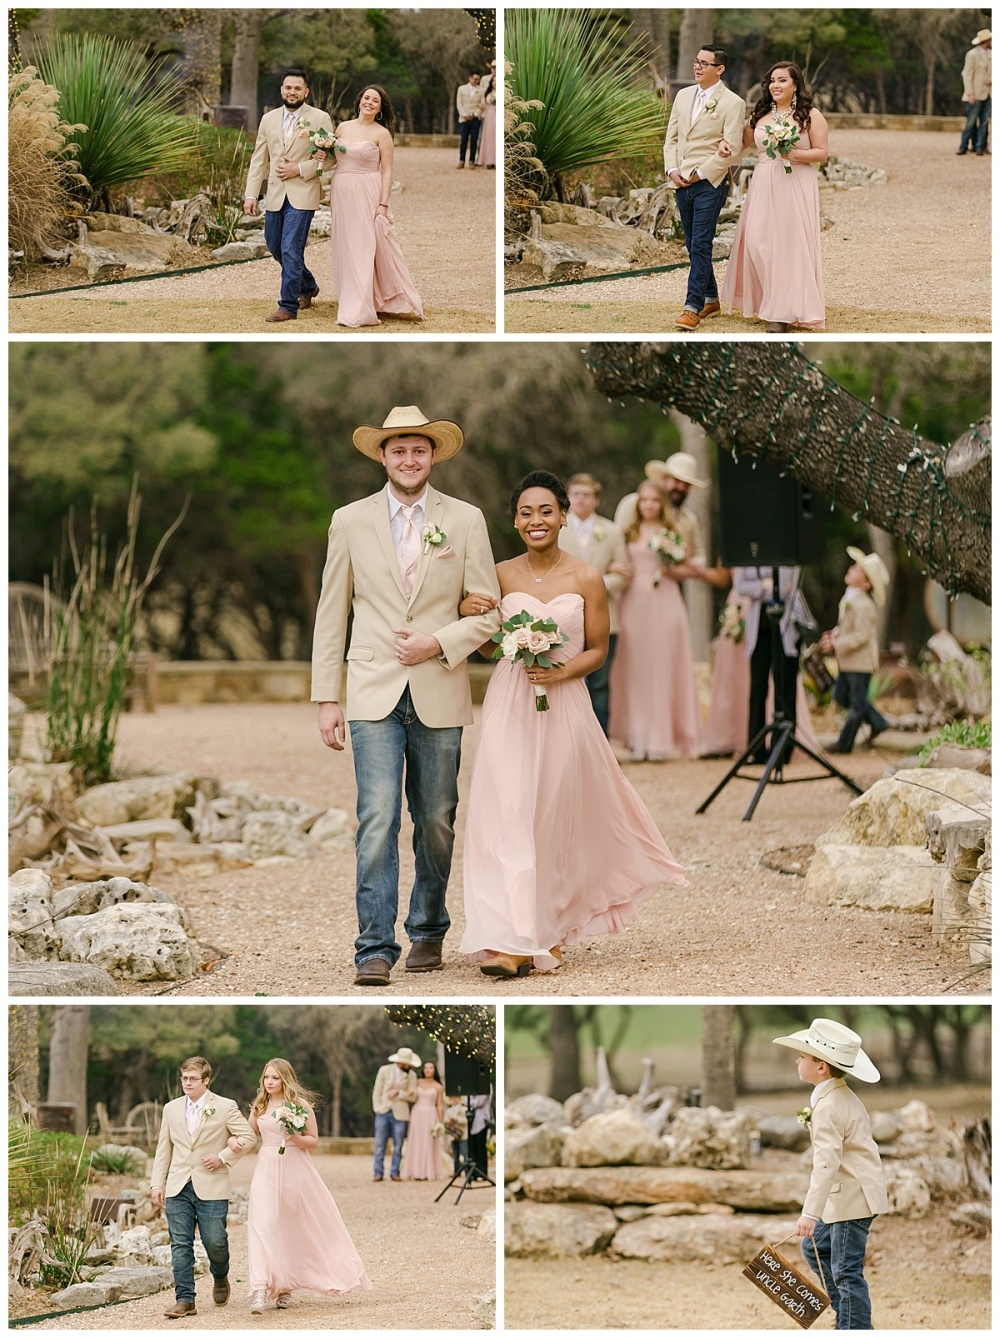 Carly-Barton-Photography-Branded-T-Ranch-Kendalia-Texas-Hill-Country-Wedding_0027.jpg